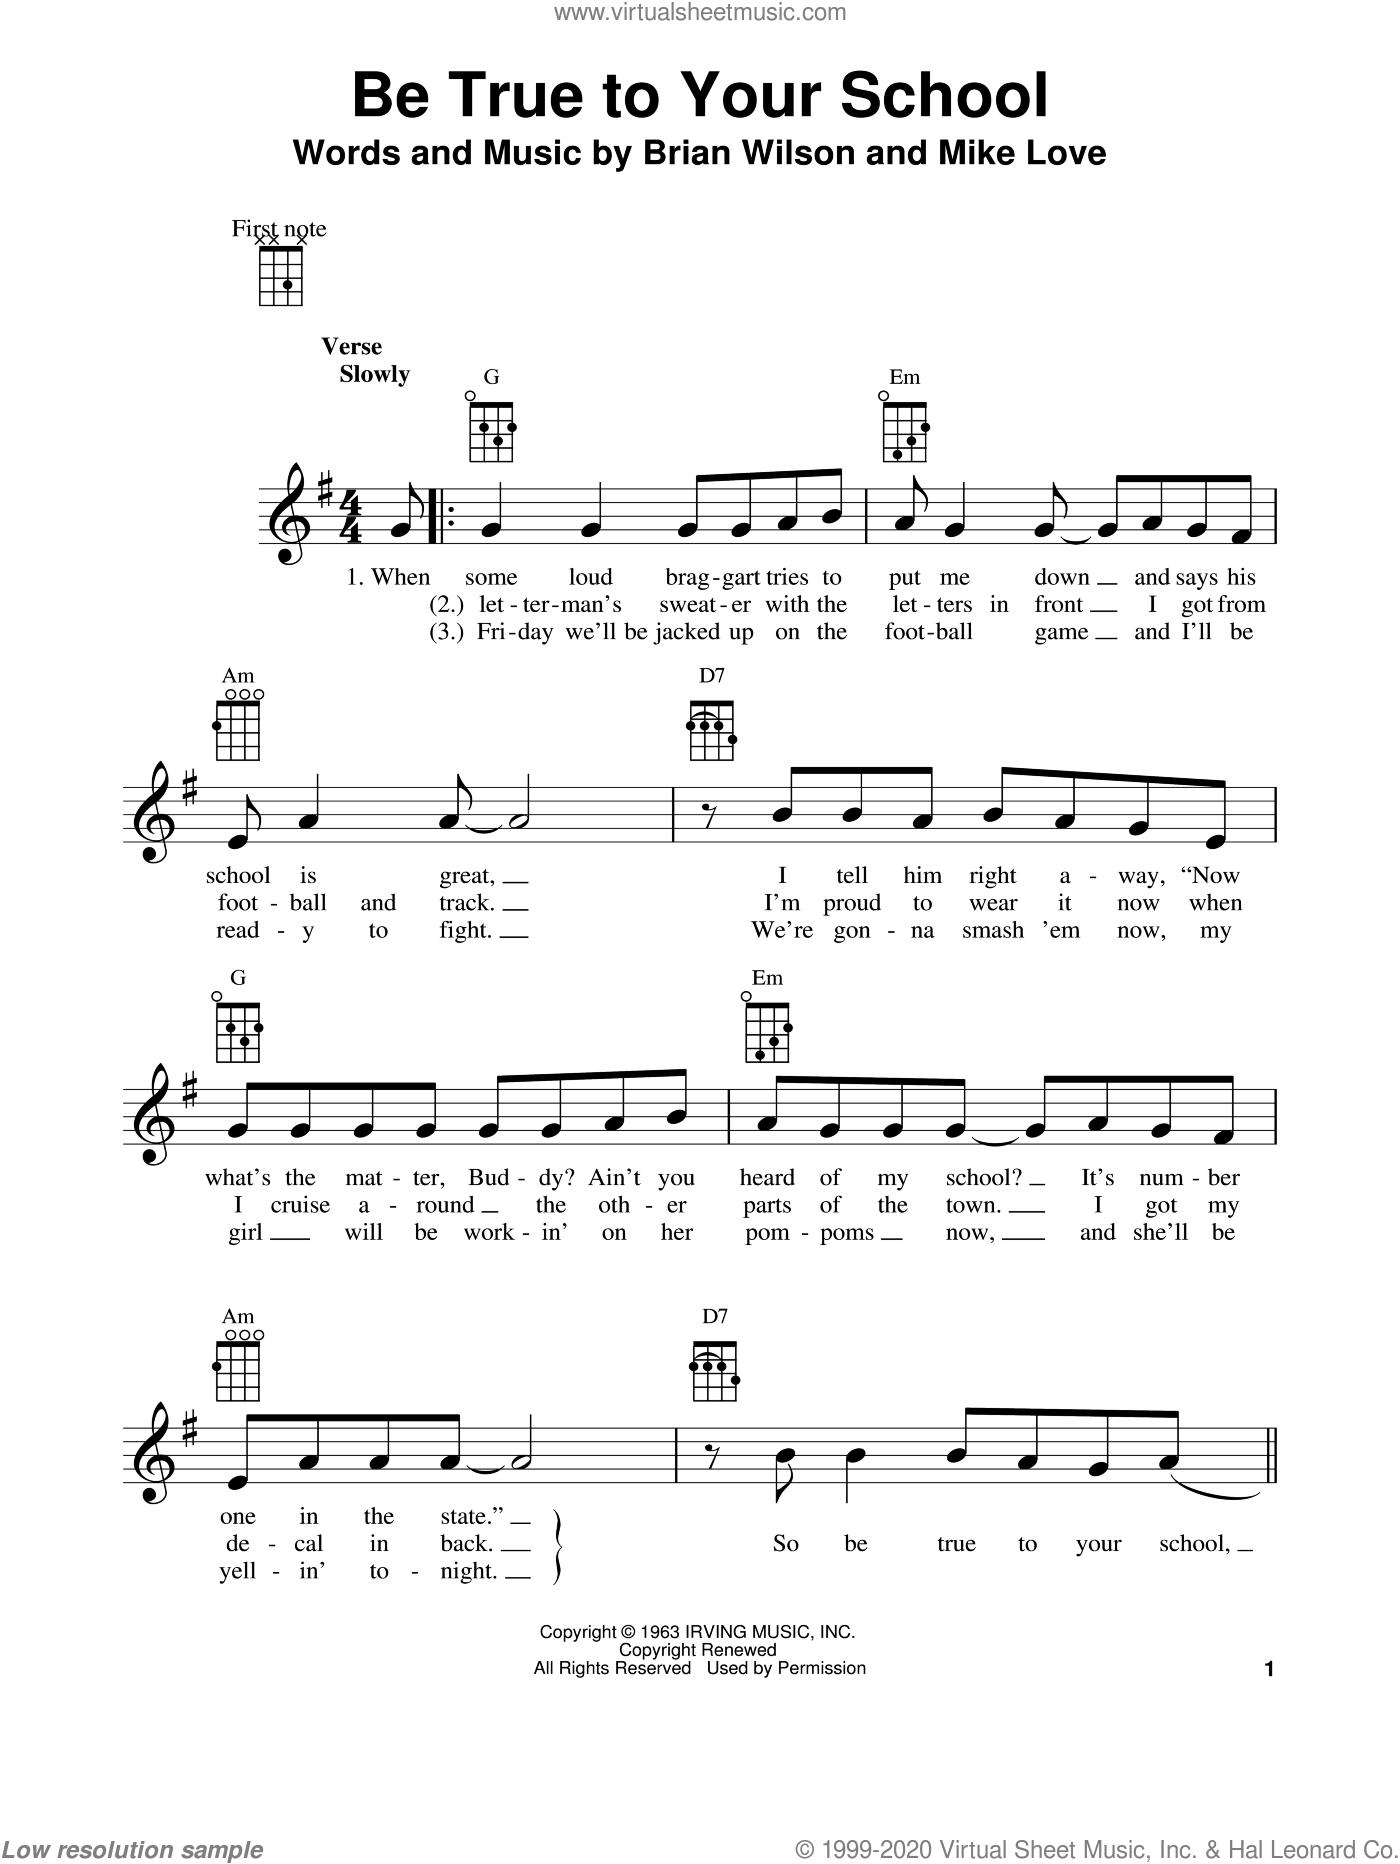 Be True To Your School sheet music for ukulele by Mike Love, The Beach Boys and Brian Wilson. Score Image Preview.